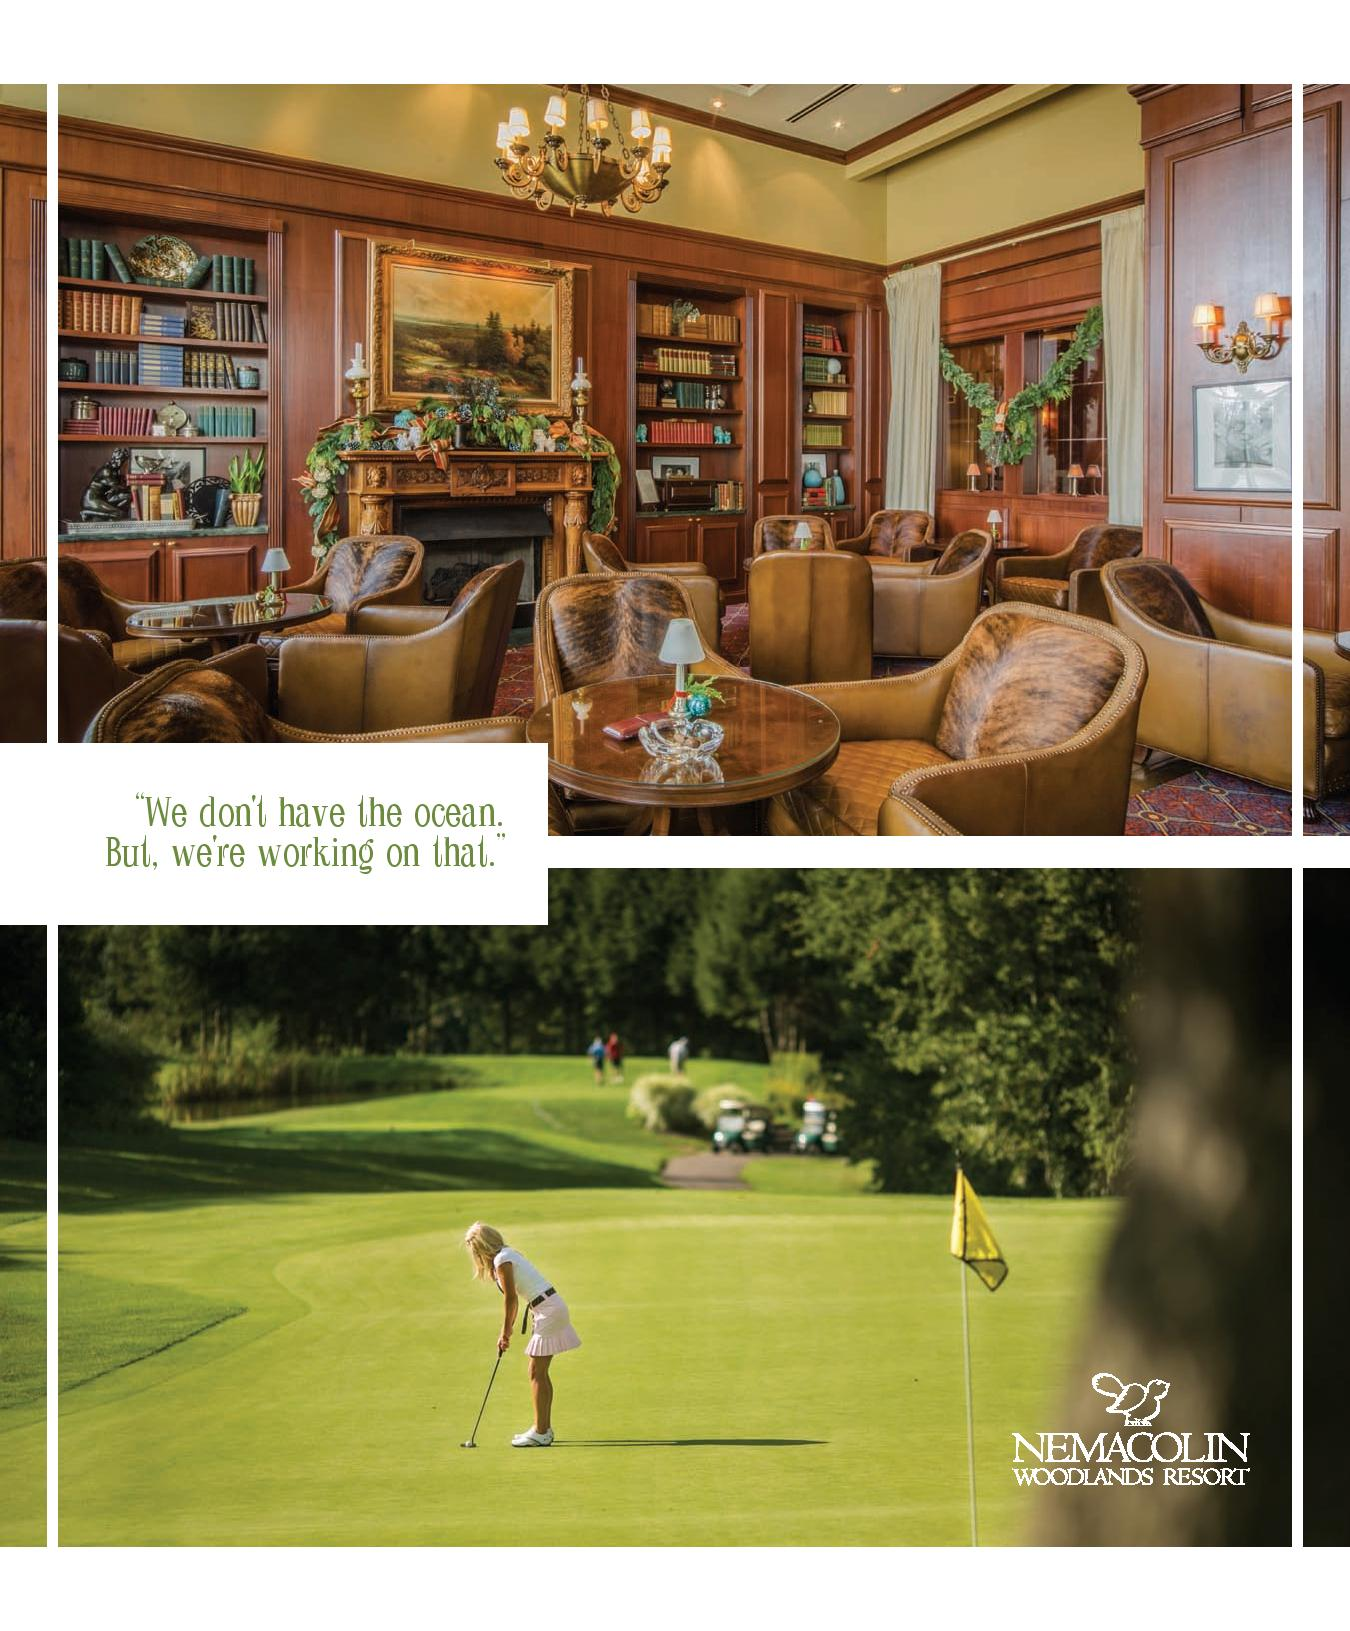 Nemacolin_Issue104b-page-004.jpg